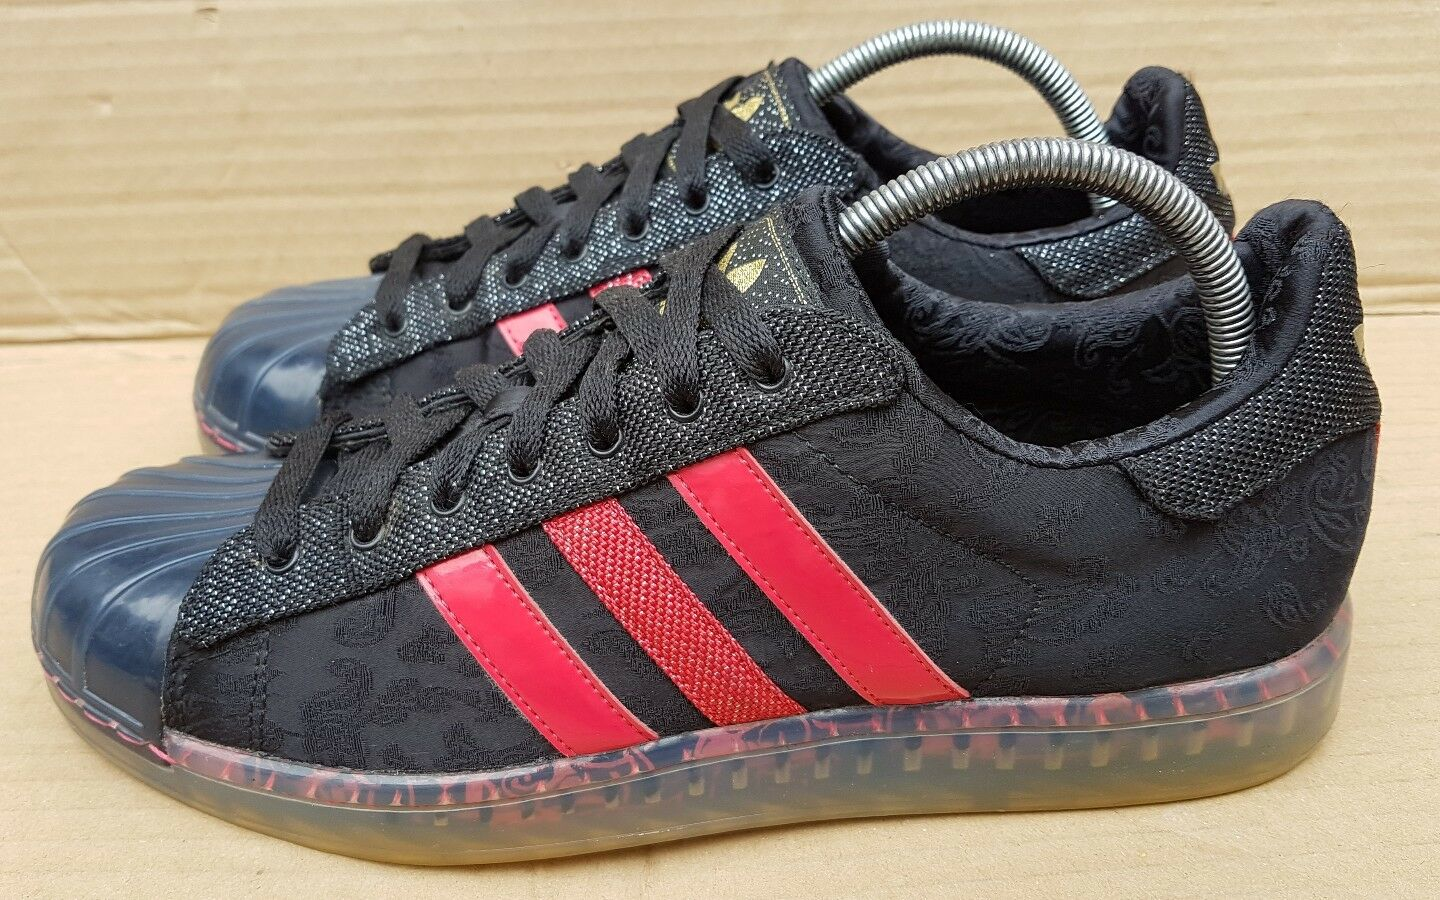 ADIDAS SUPERSTAR CLR 7 SINS OF SOLE TRAINERS BLACK AND ROT SIZE 7 UK RARE MINT